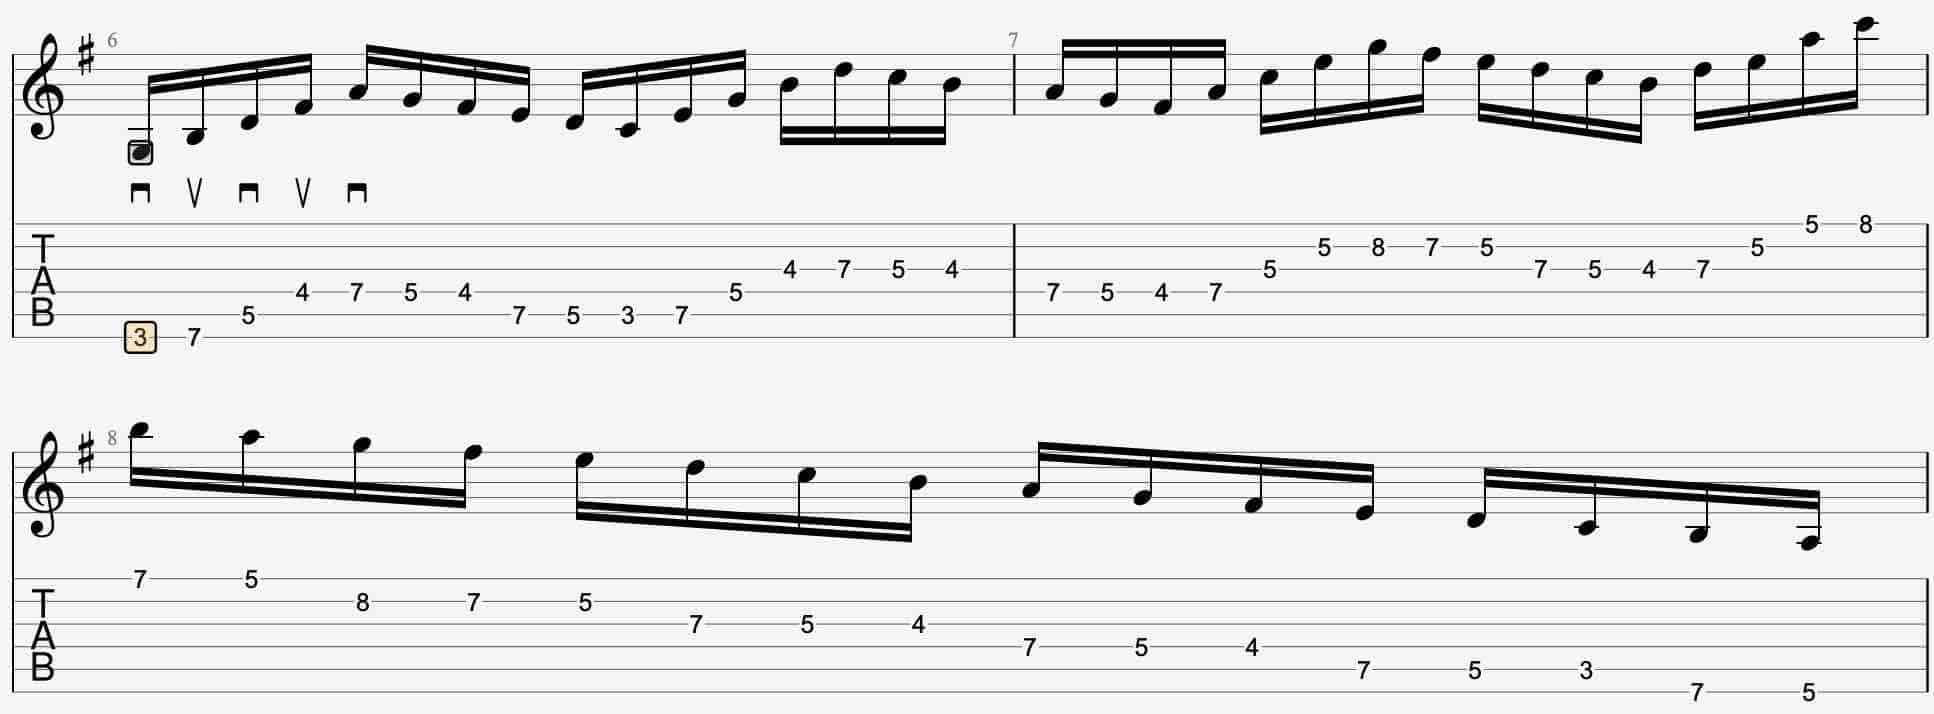 arpeggios for guitar